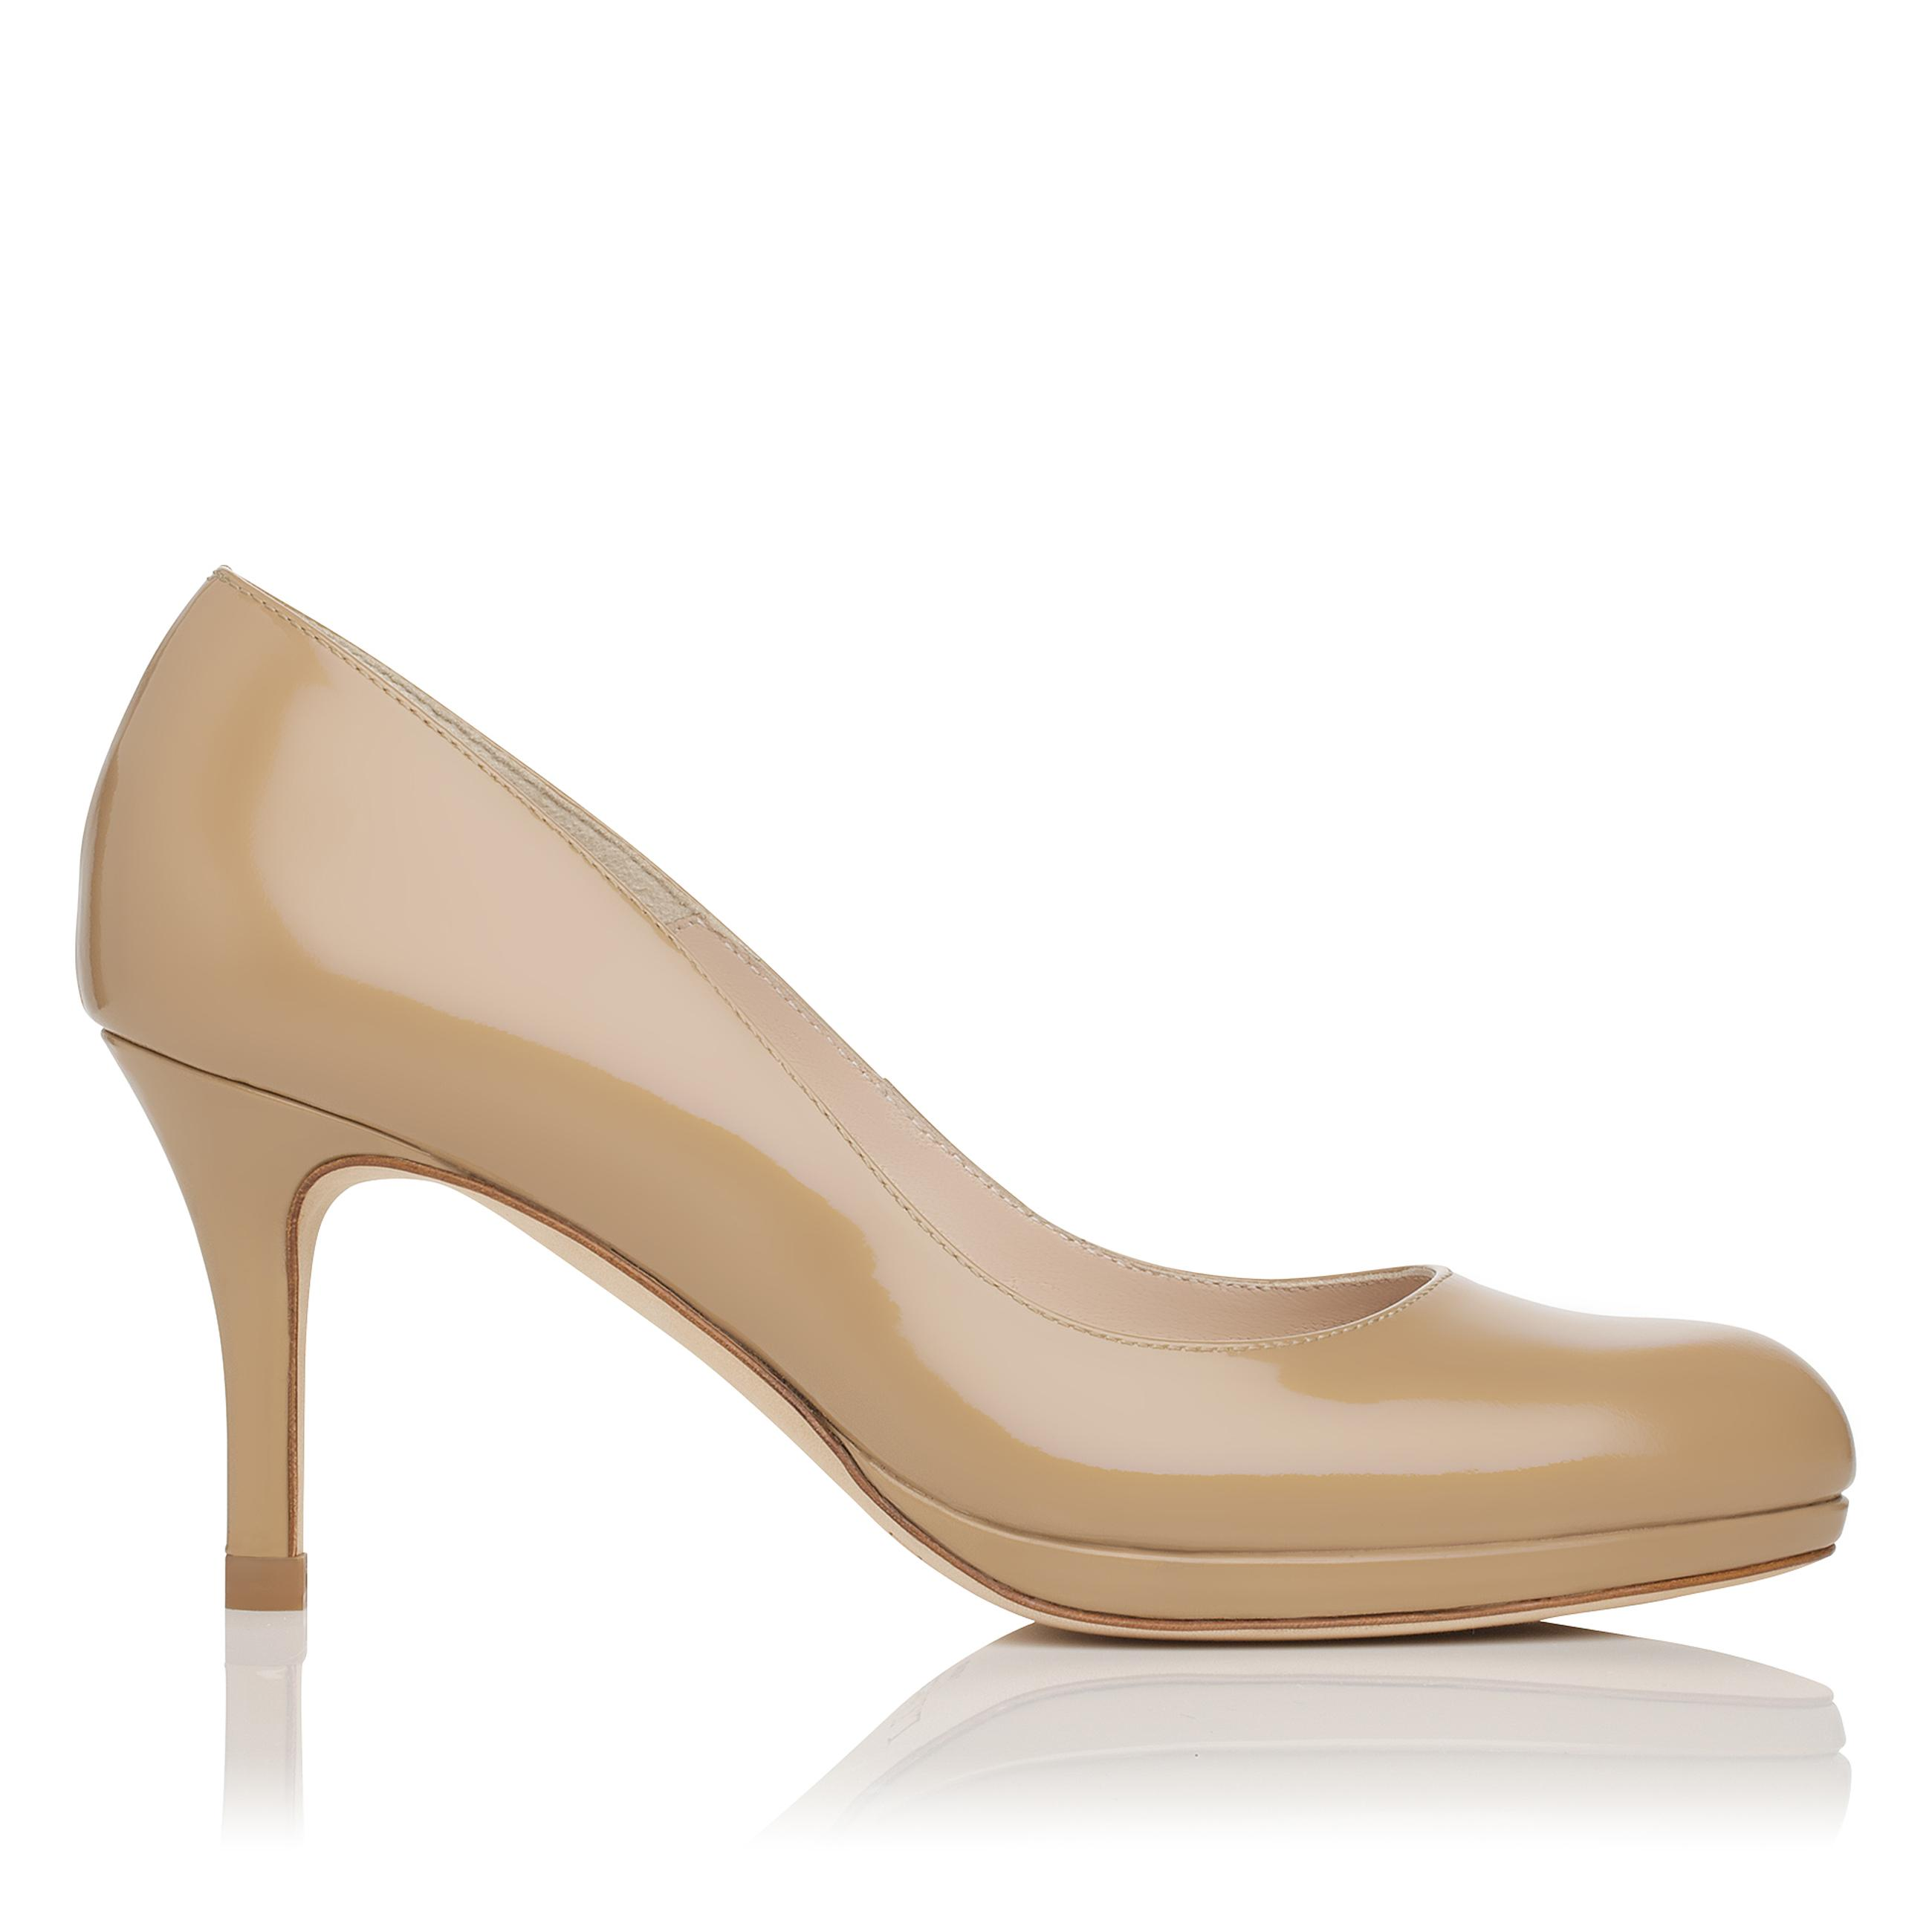 L.K.Bennett Sybila Patent Leather Platform Pump